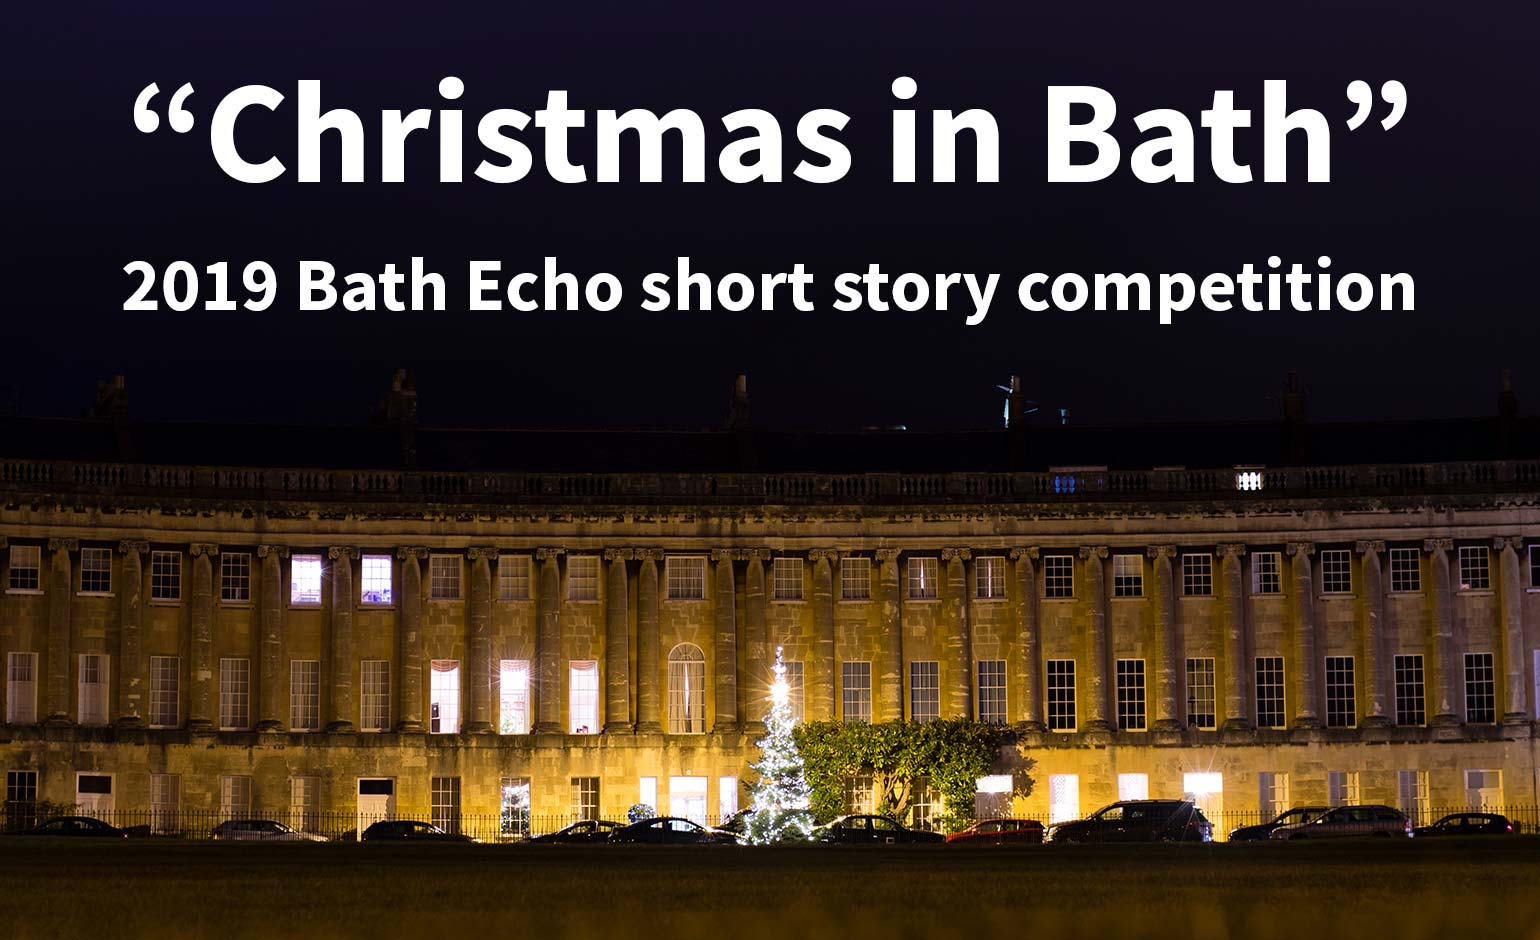 Enter the Bath Echo Christmas short story competition